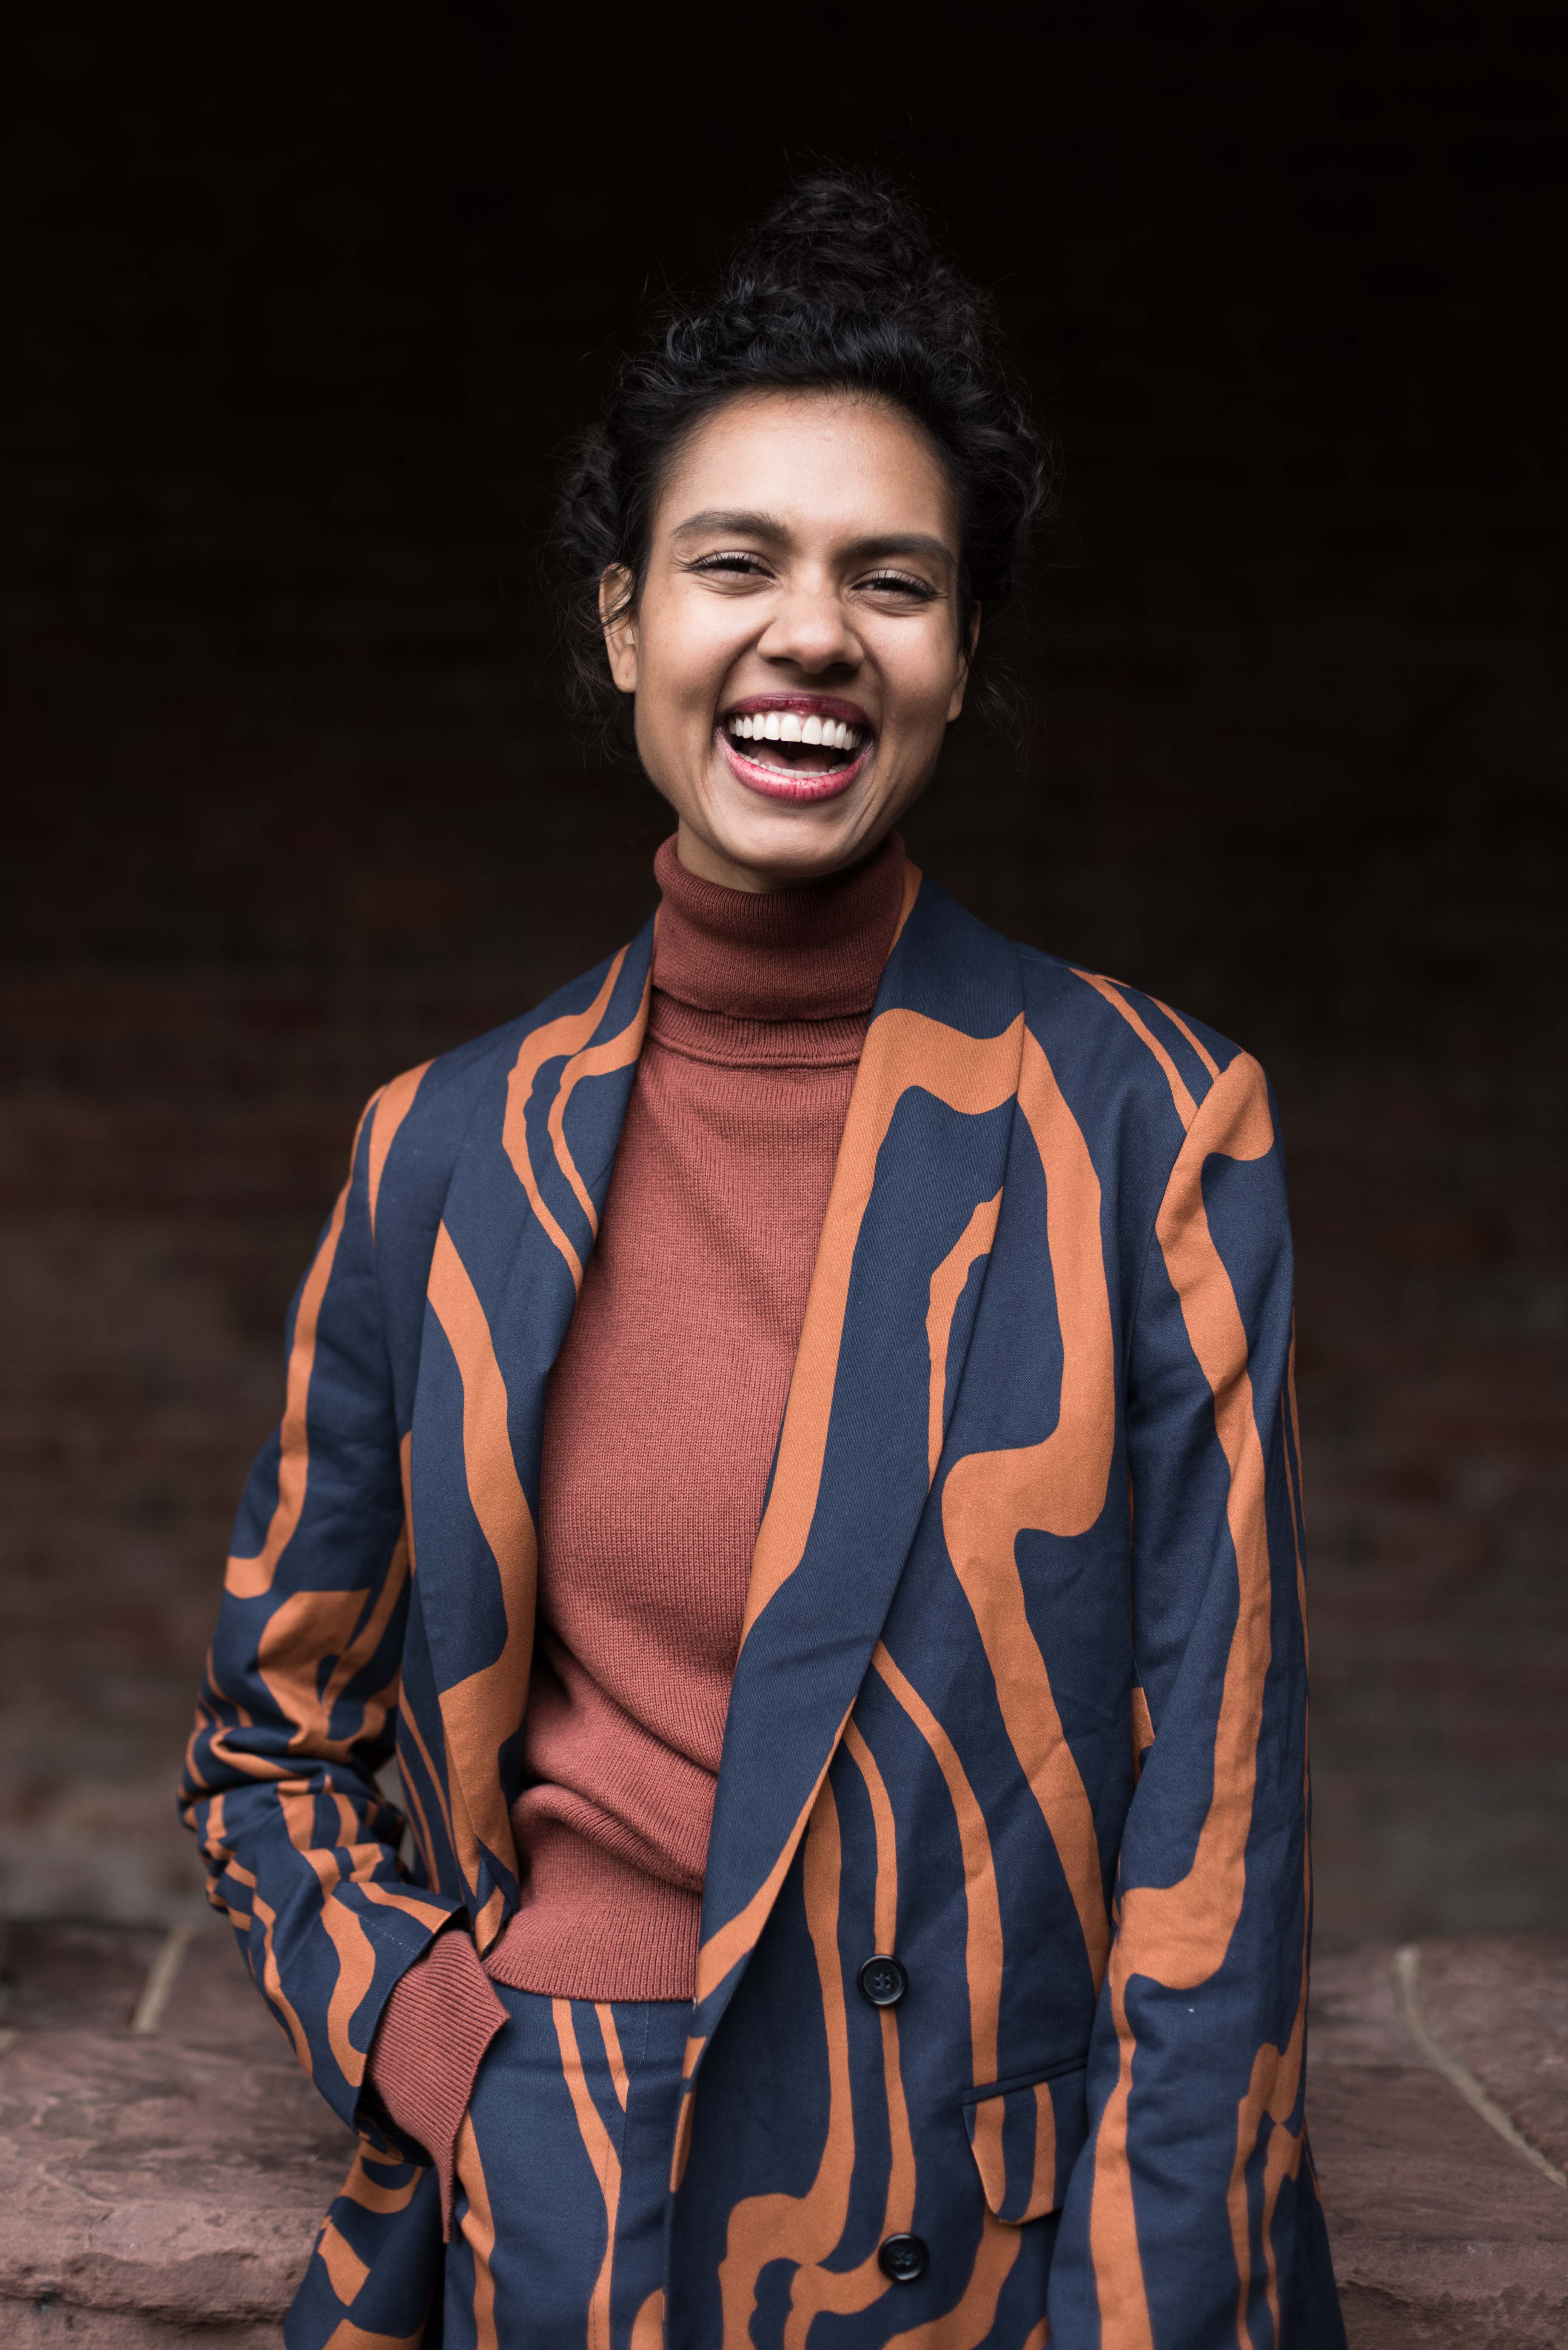 woman with hair pulled back, laughing. She is wearing a terracotta turtlneck and a navy and orange swirl print suit.